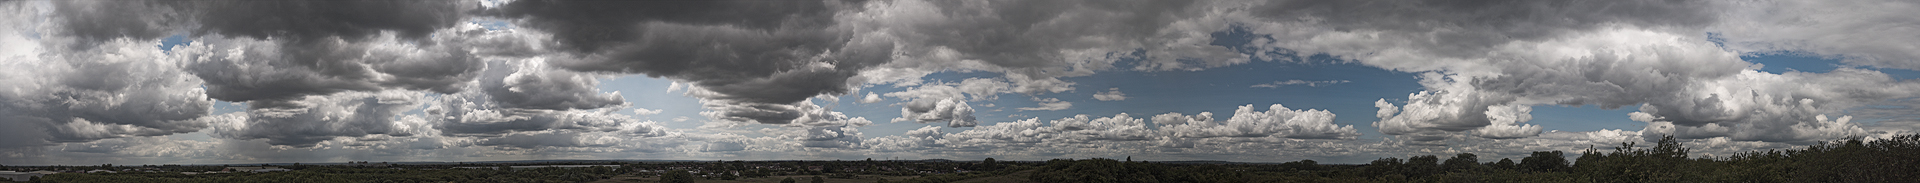 Photography - Bedfont Cloud Panorama Large by Nicholas M Vivian